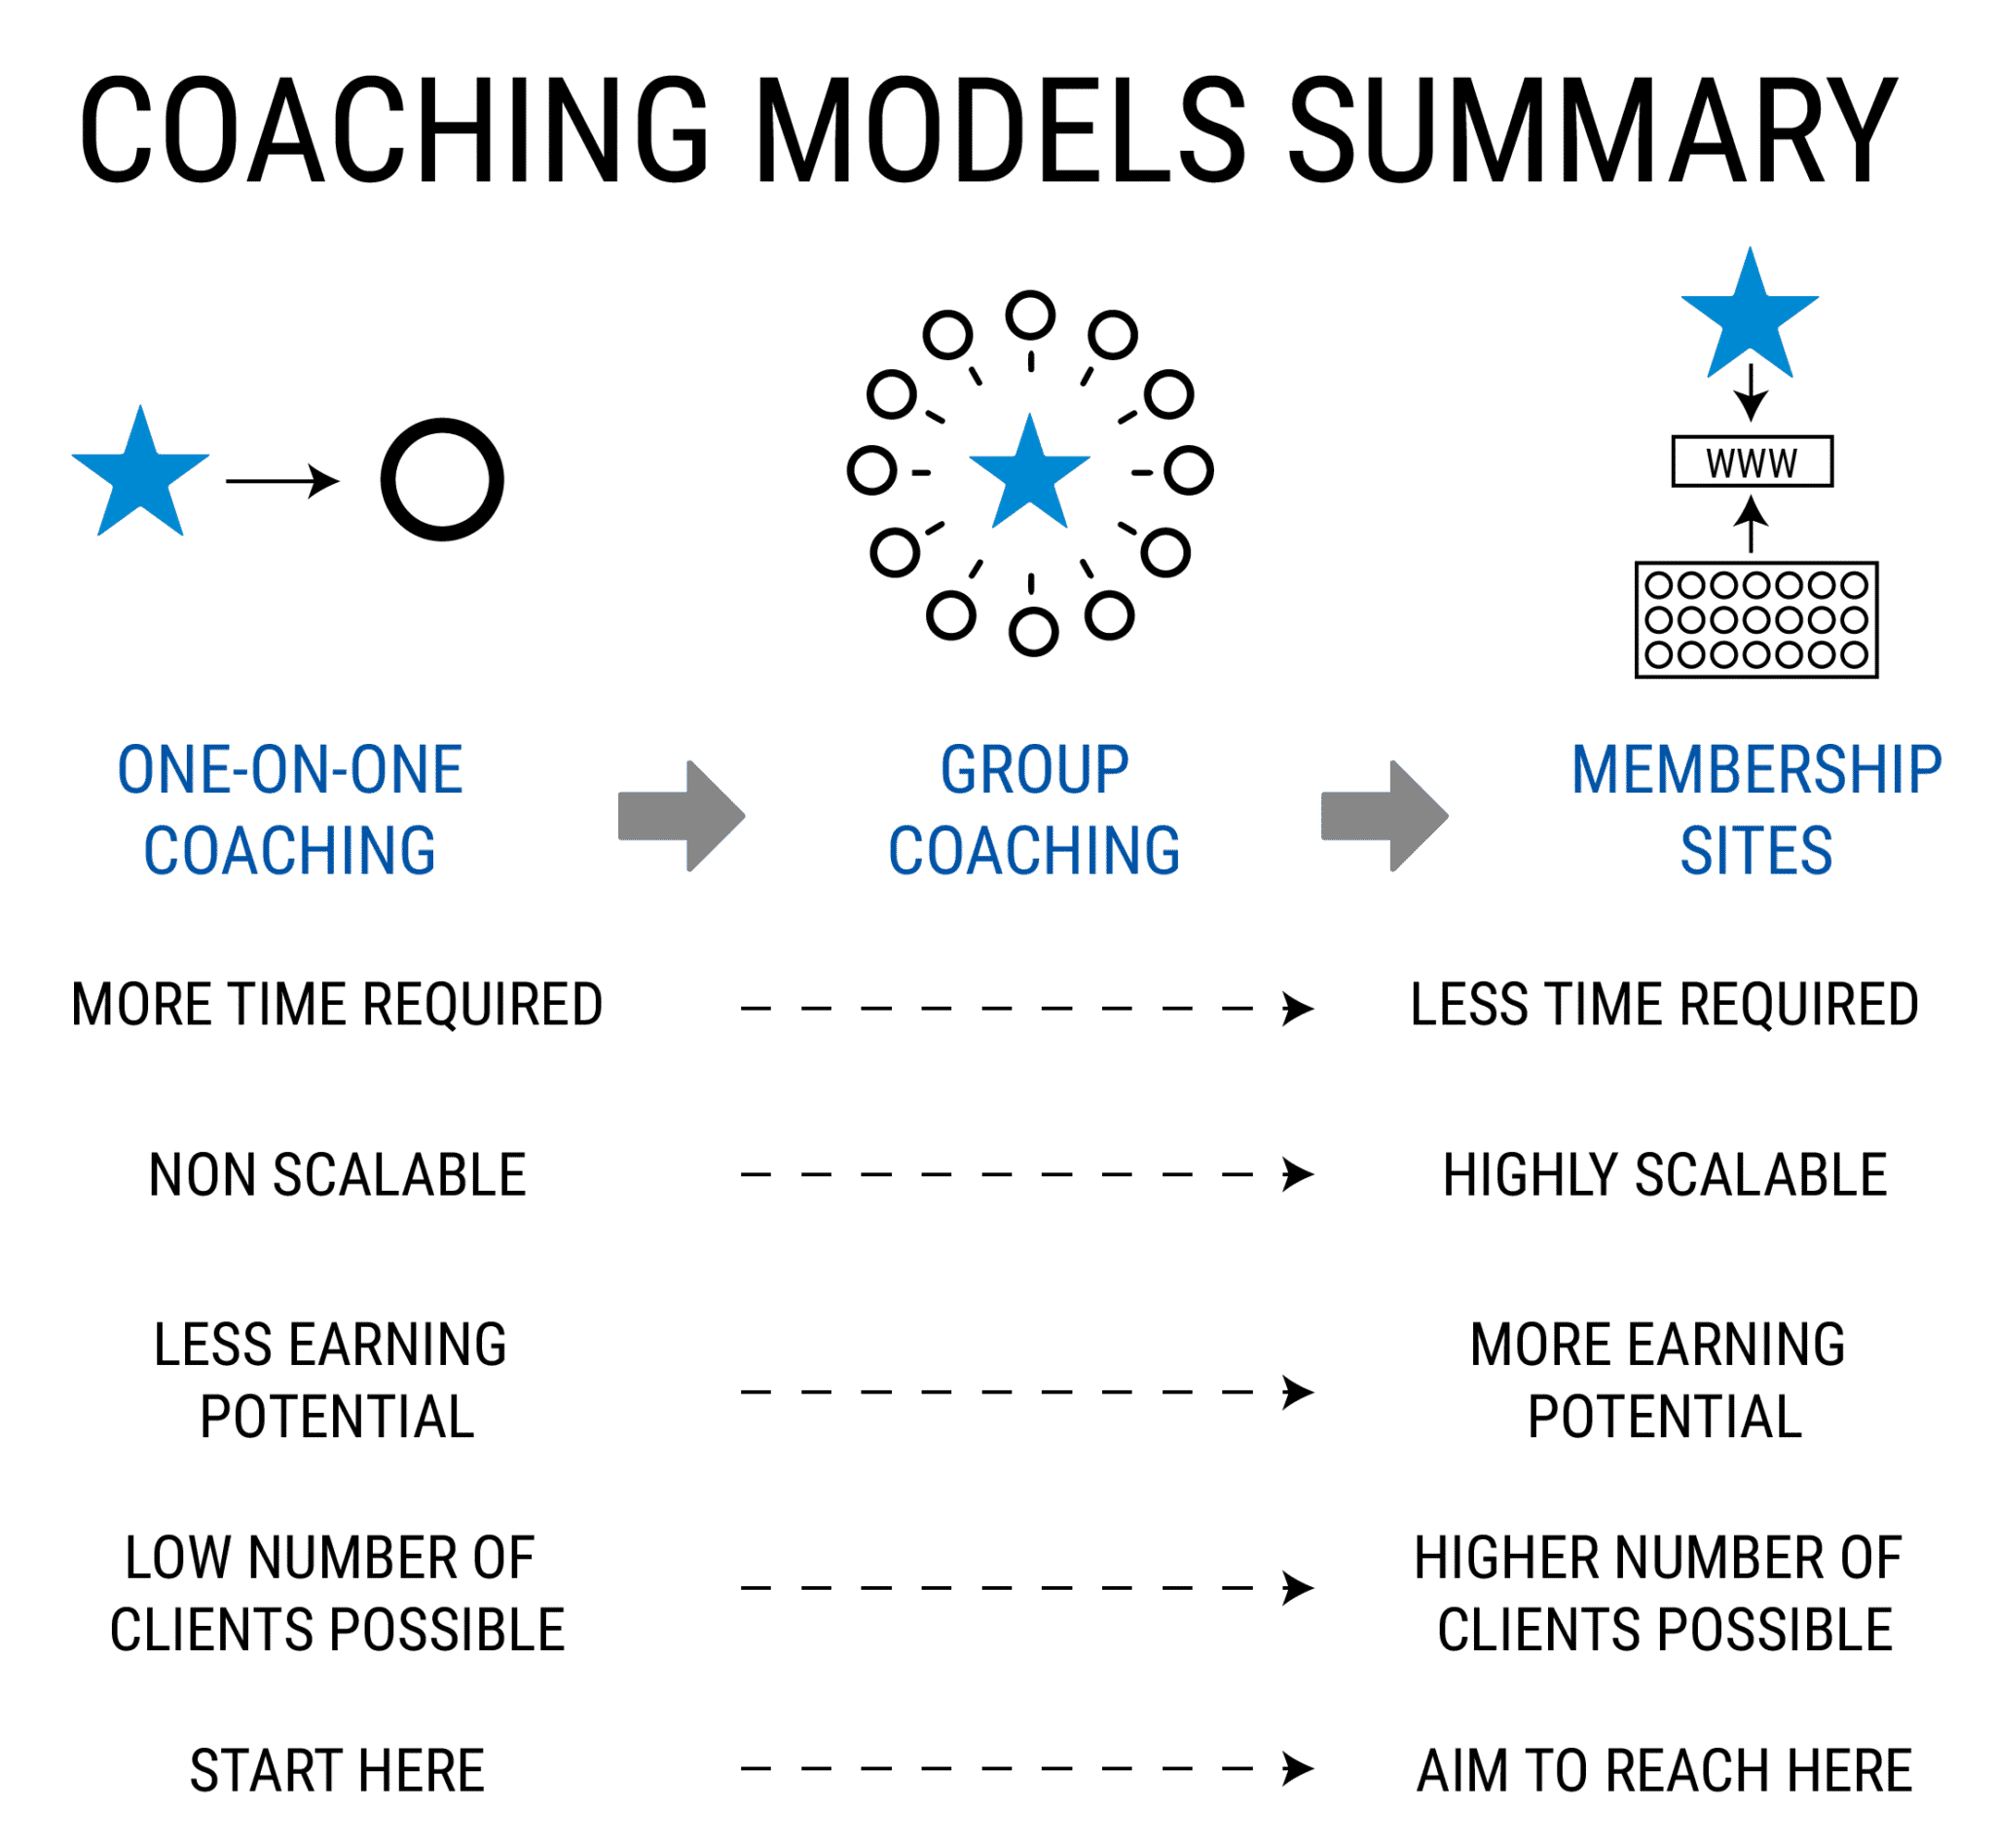 coaching models summary - start a successful online coaching business